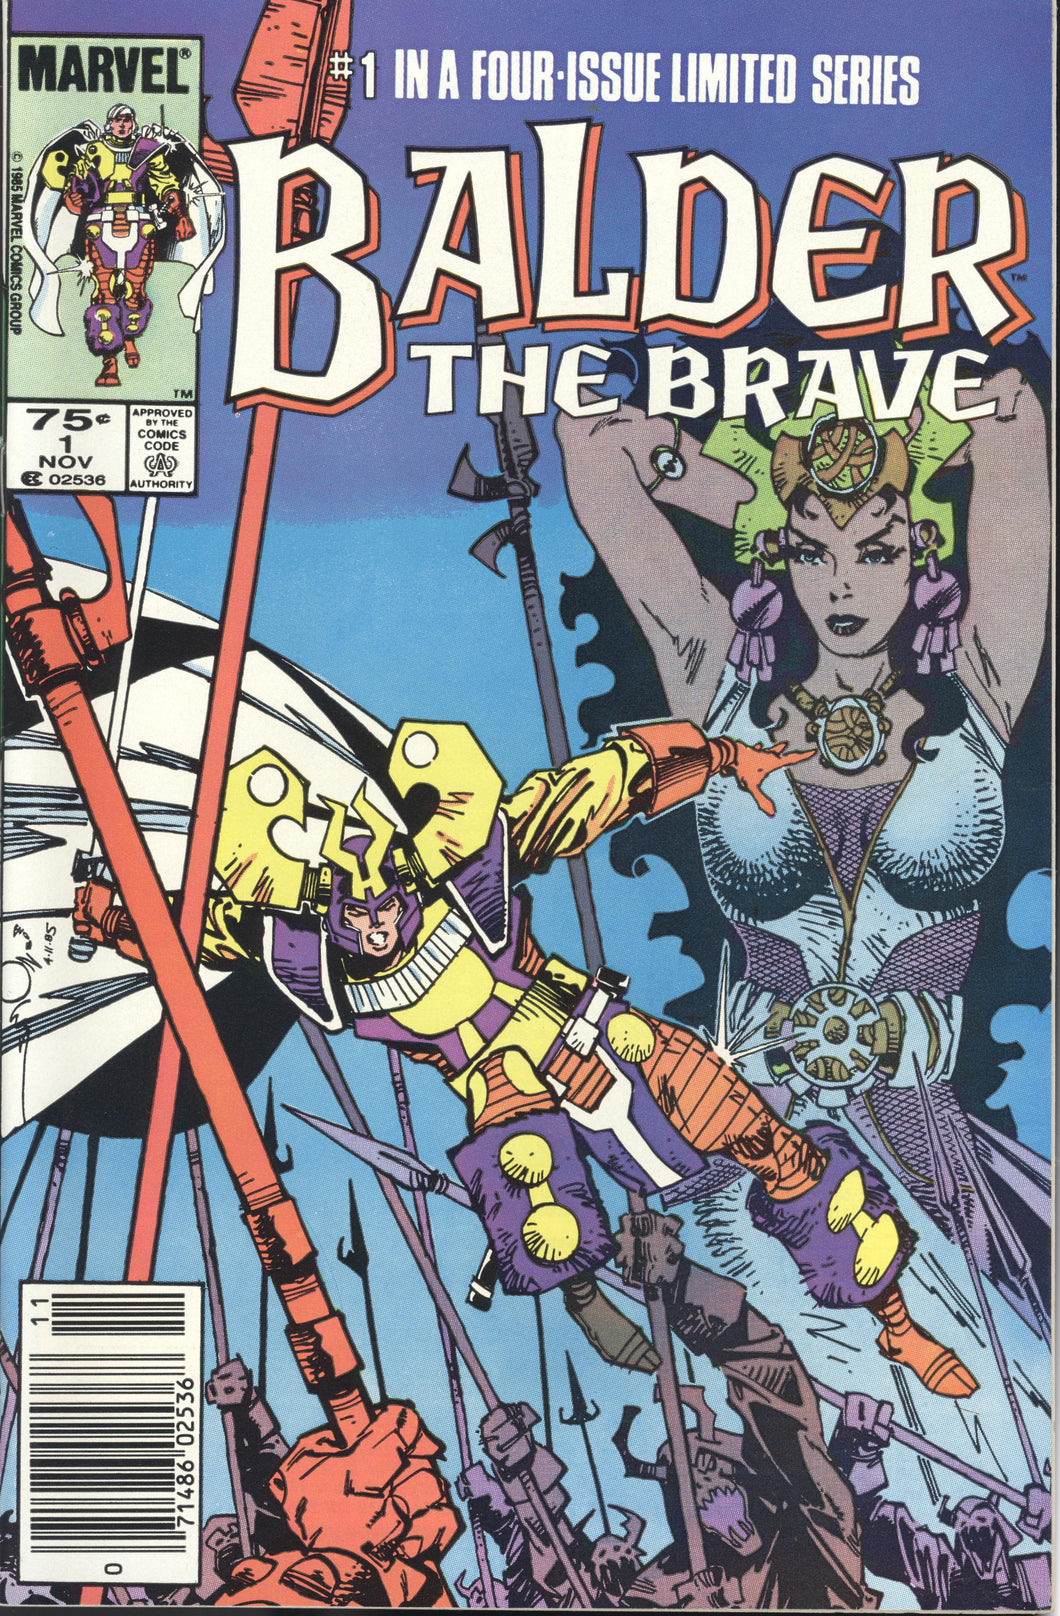 BALDER THE BRAVE (1985 Marvel) #1-4 COMPLETE SETS